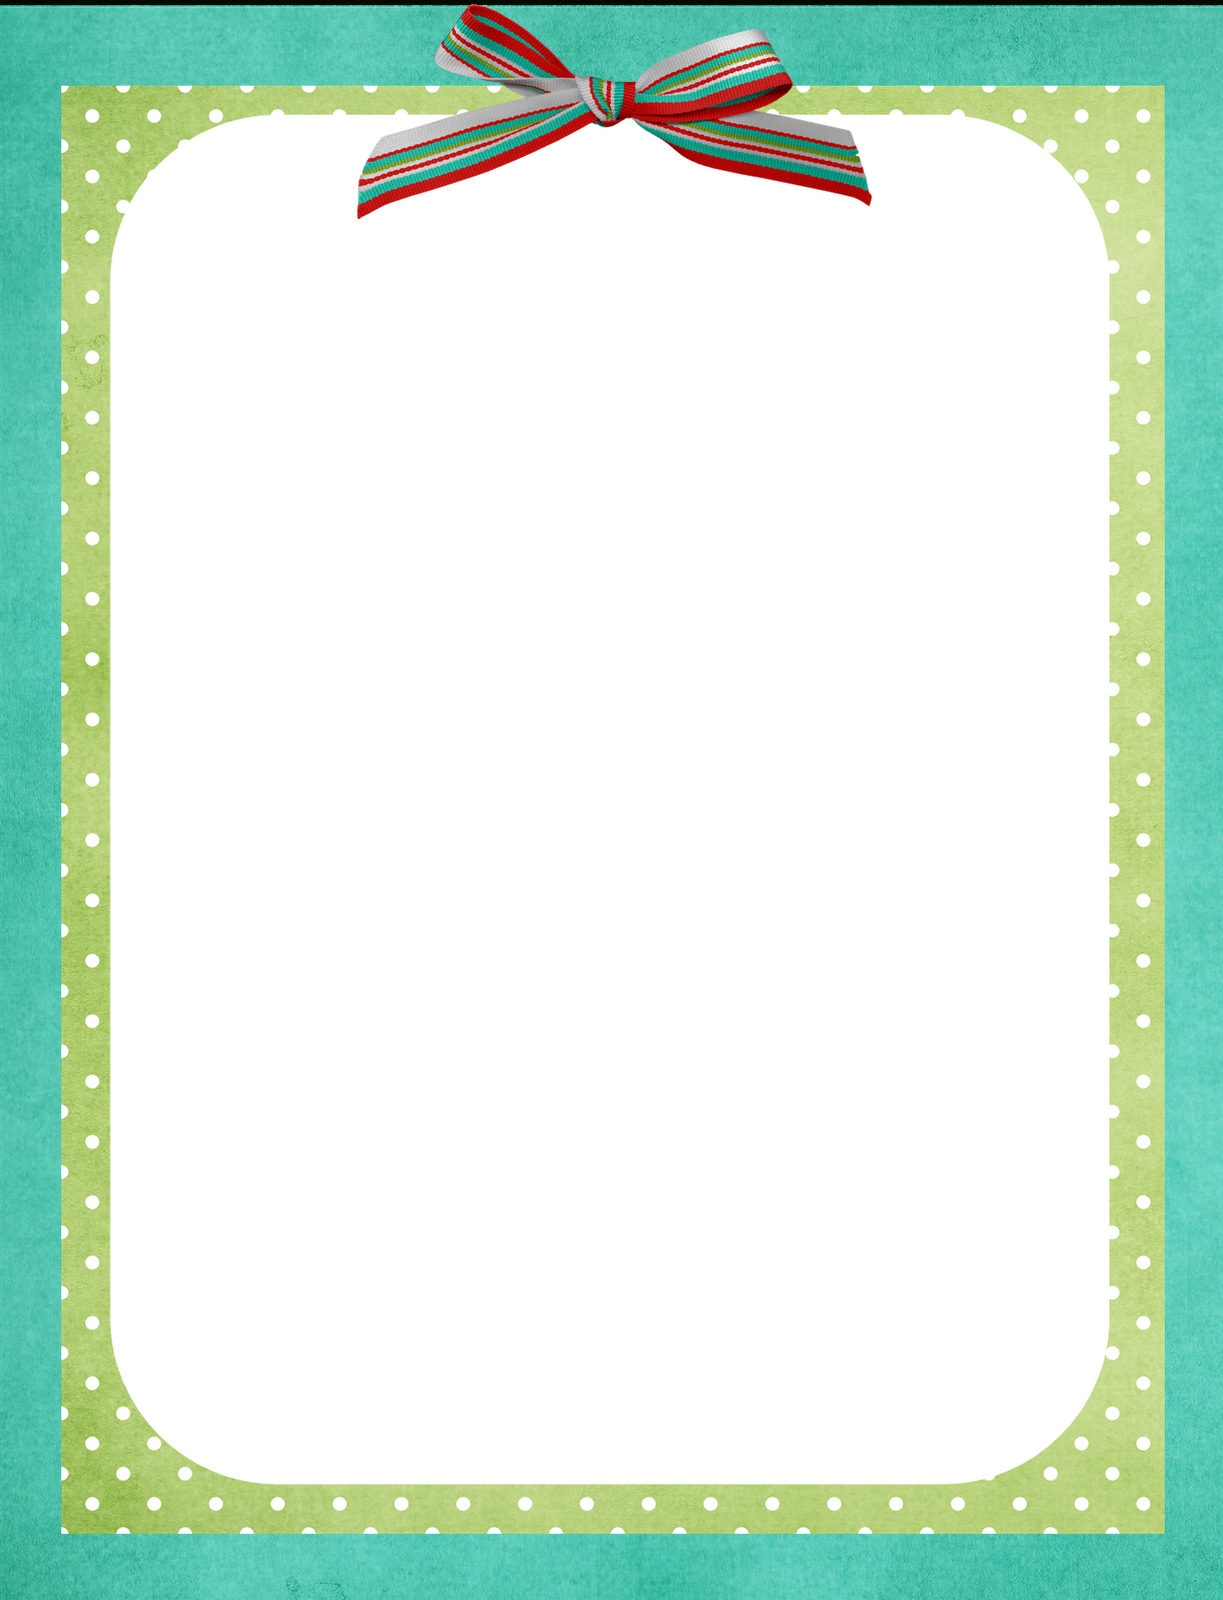 Free Border Template | All Things Nice | Border Templates, Borders - Free Printable Page Borders